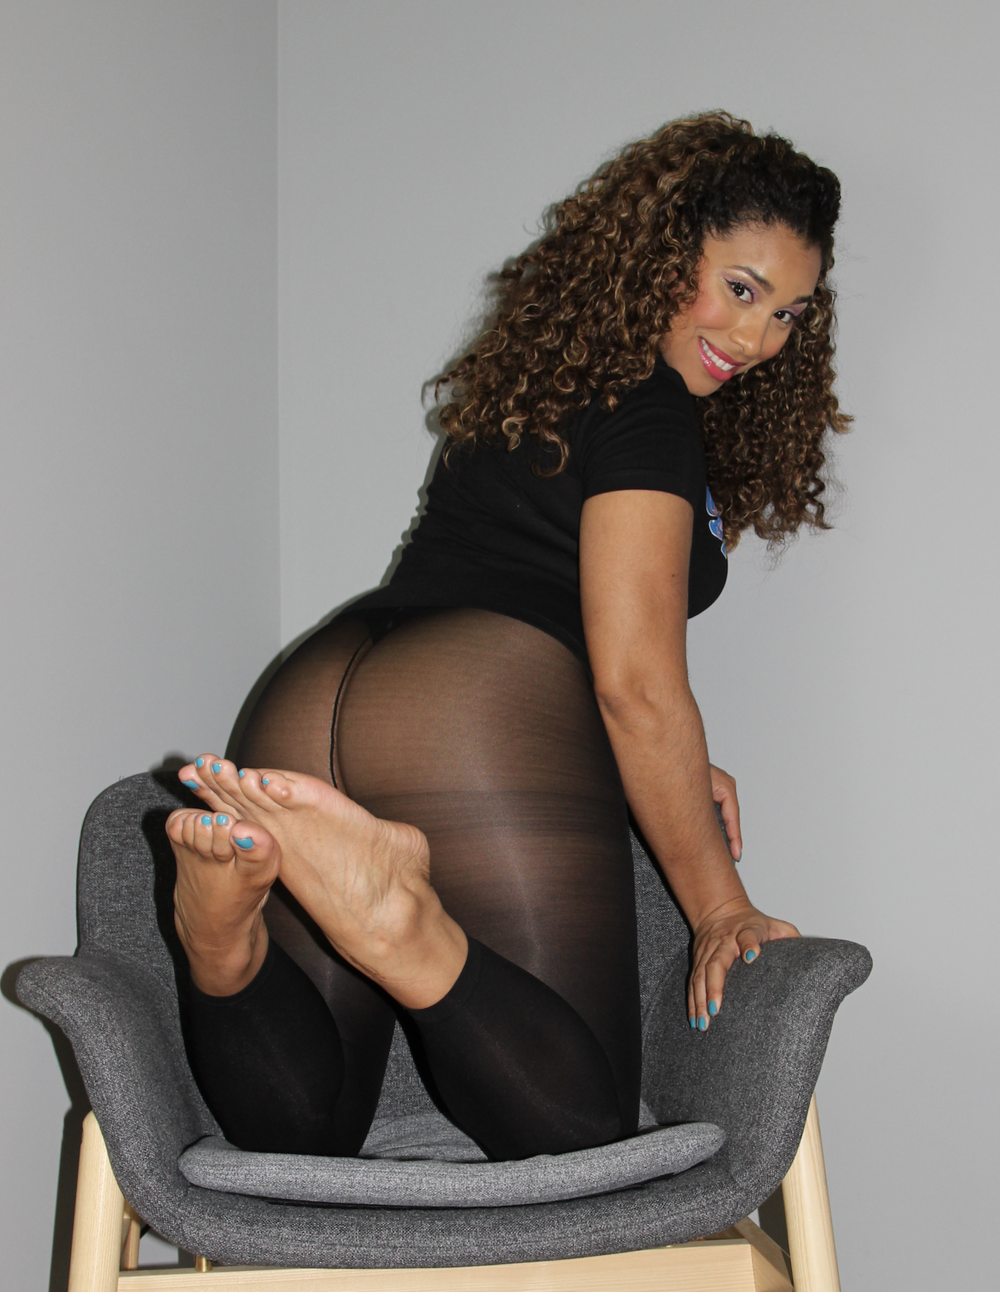 Goddess gigi - Goddess GiGi is a Beautiful Caramel colored Latina with curves for days and Thick, Meaty SIZE 10 Feet that will have you CUMpletely amazed. GiGi is incredibly sweet- though her speciality is smothering Gentlemen with her BIG SEXY FEET!